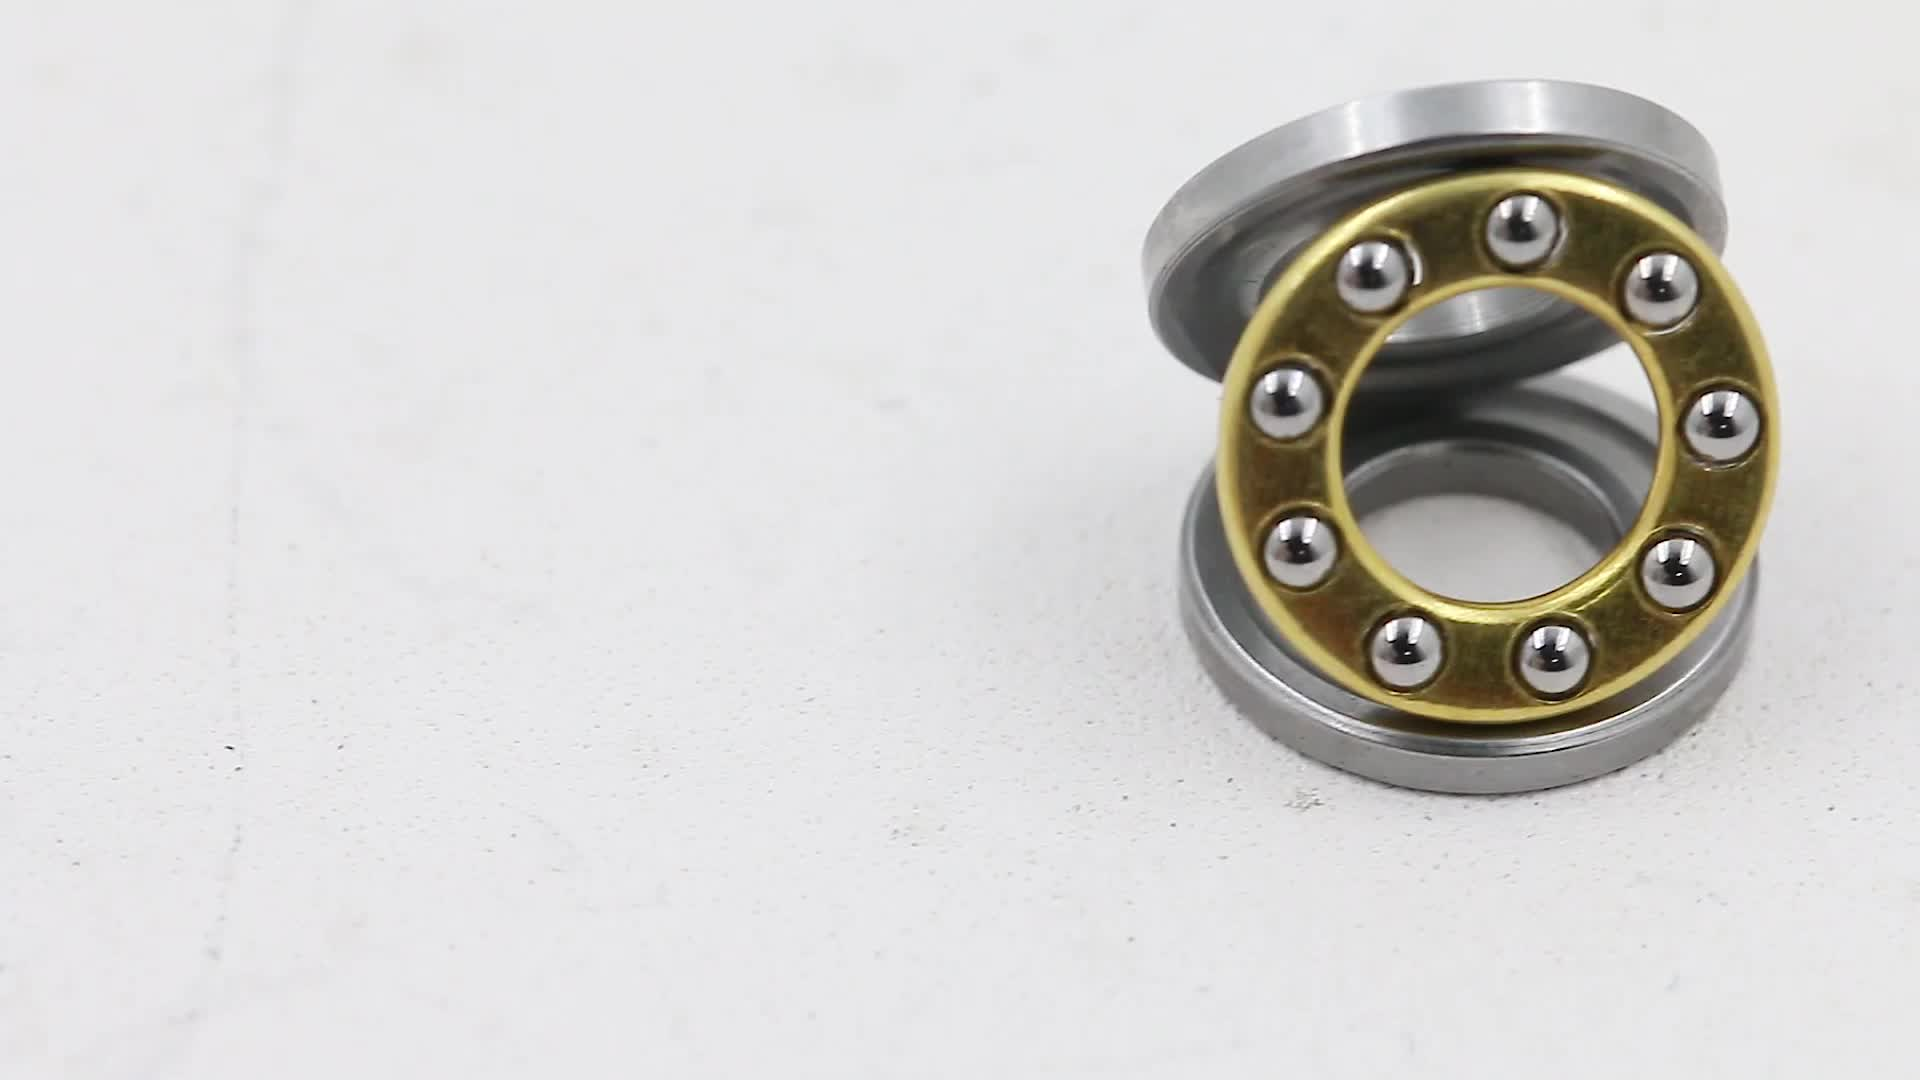 F10-18 F10-18M SF10-18M 10*18*5.5mm axial mini brass steel cage chrome stainless steel thrust ball bearing F10-18